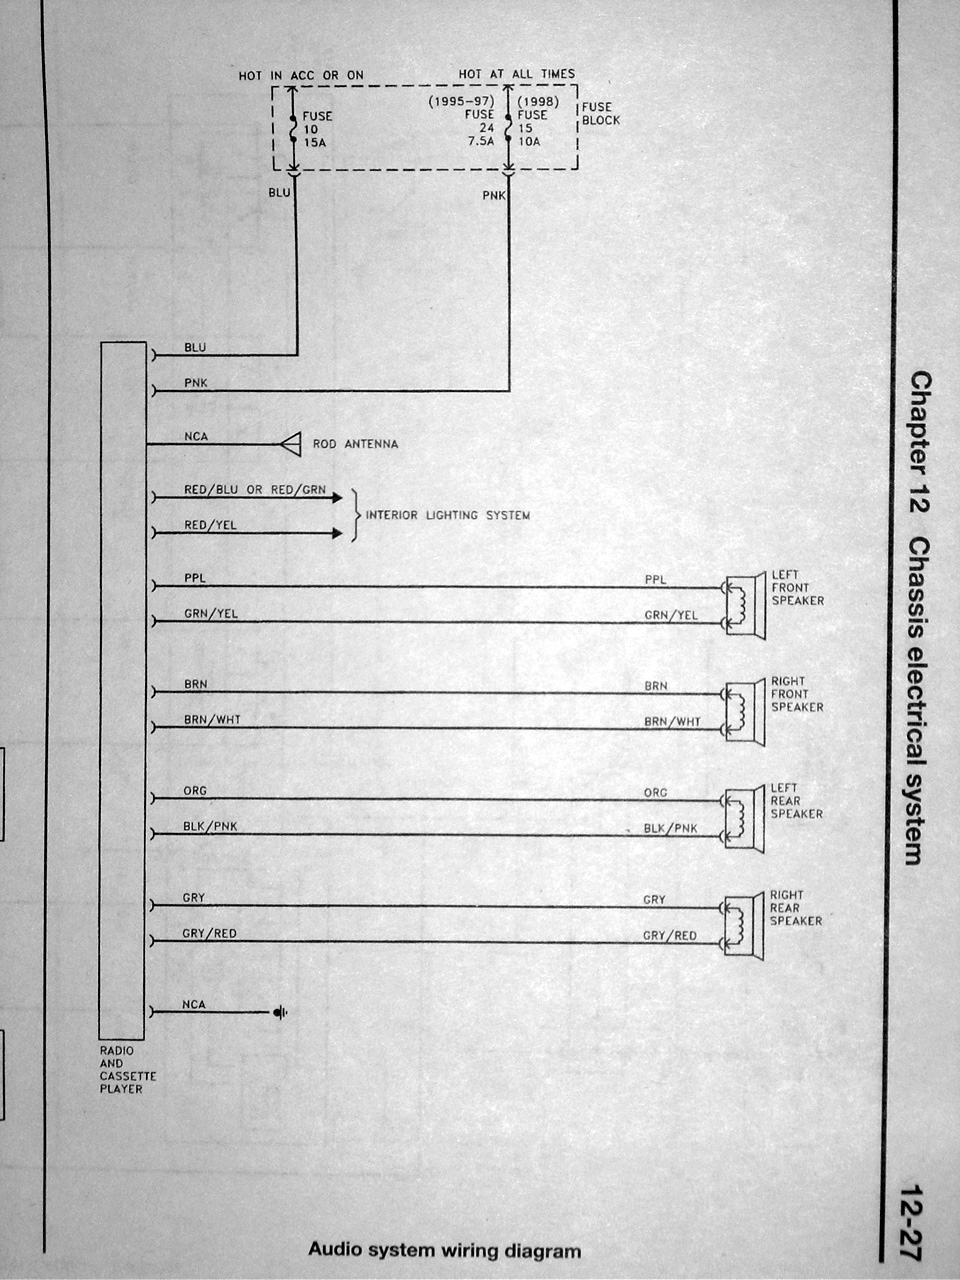 DSC01849 wiring diagram thread *useful info* nissan forum 2000 nissan xterra radio wiring diagram at eliteediting.co